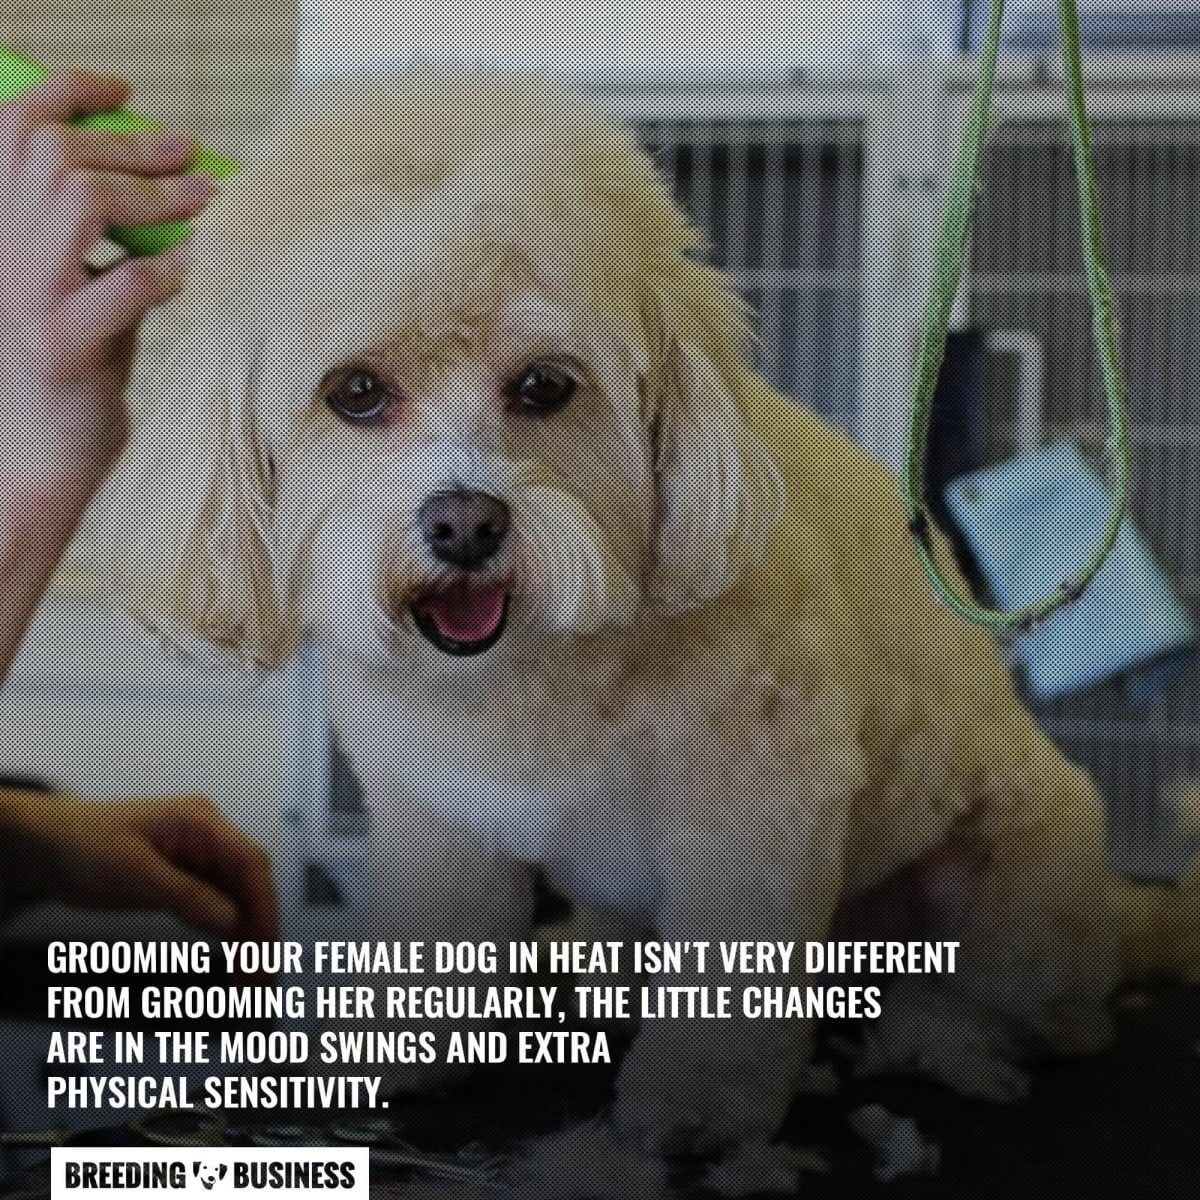 grooming female dog in heat with care